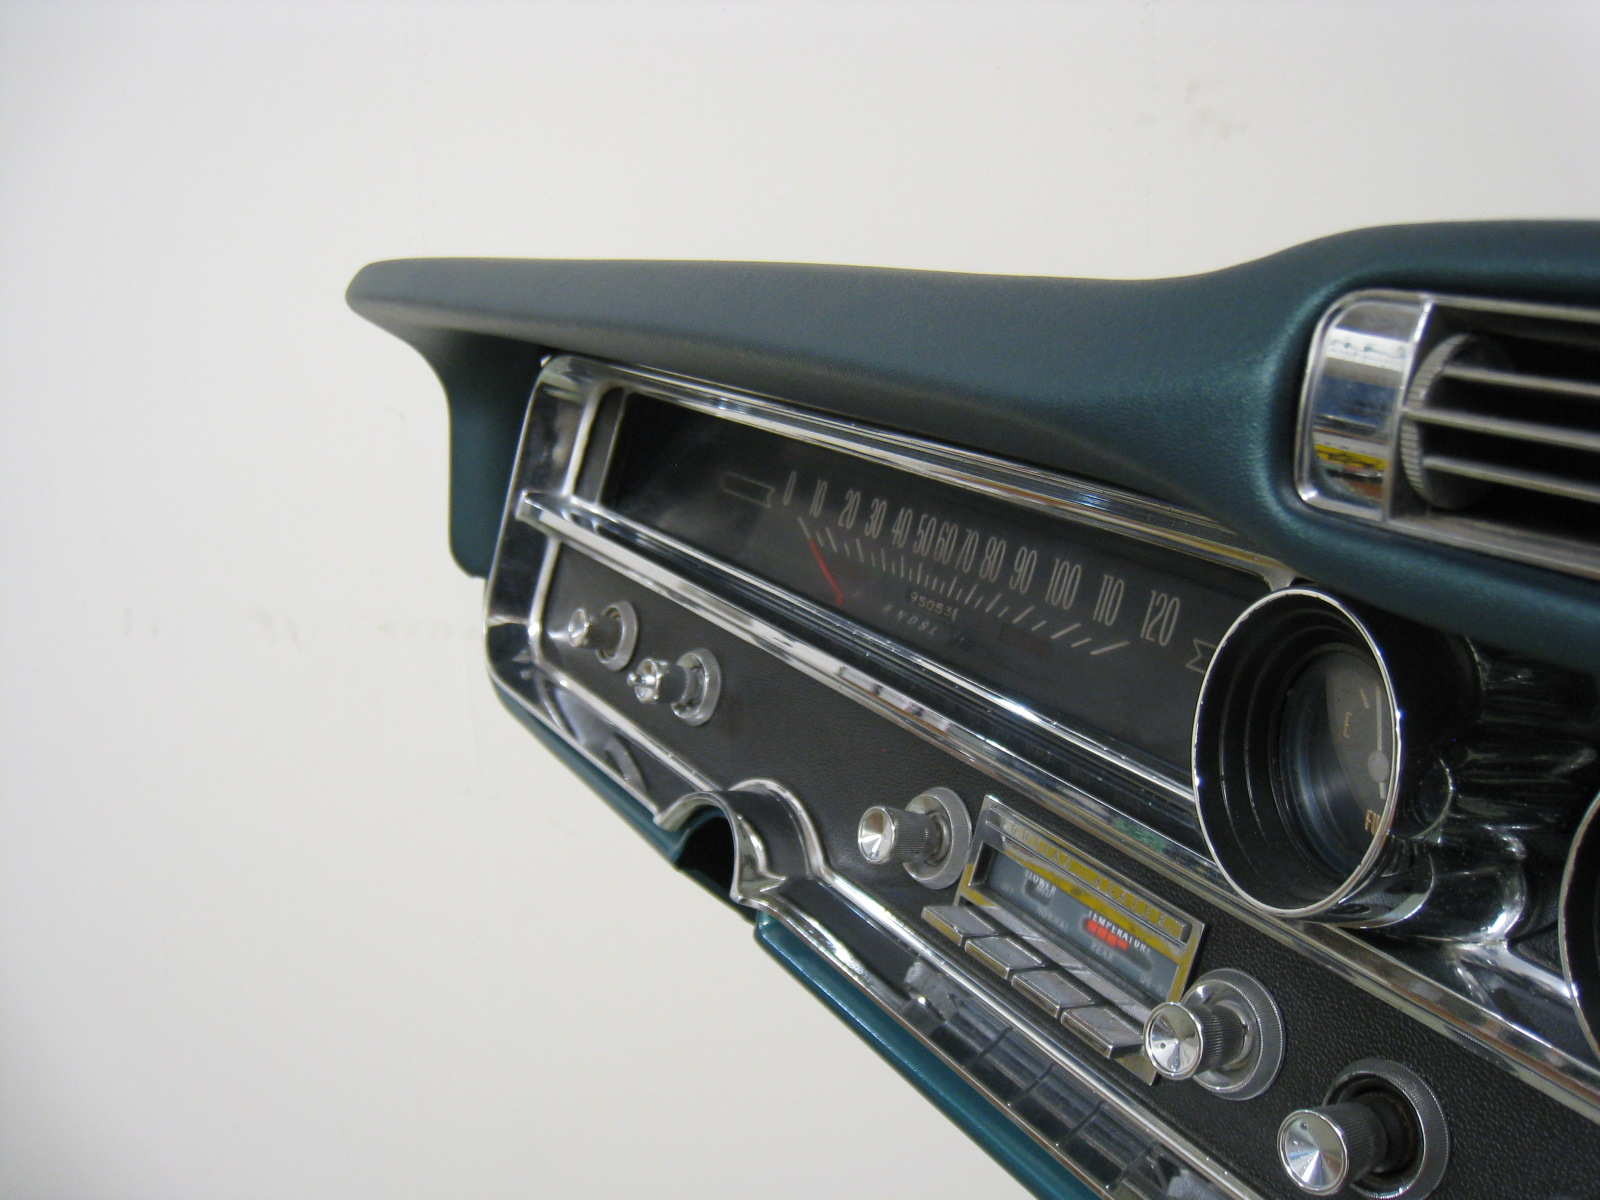 Rd Autoline Welcome To The Company For Those That 1960s Pontiac Gto Dash 1965 Bonneville Ac Dashboard Img 4692